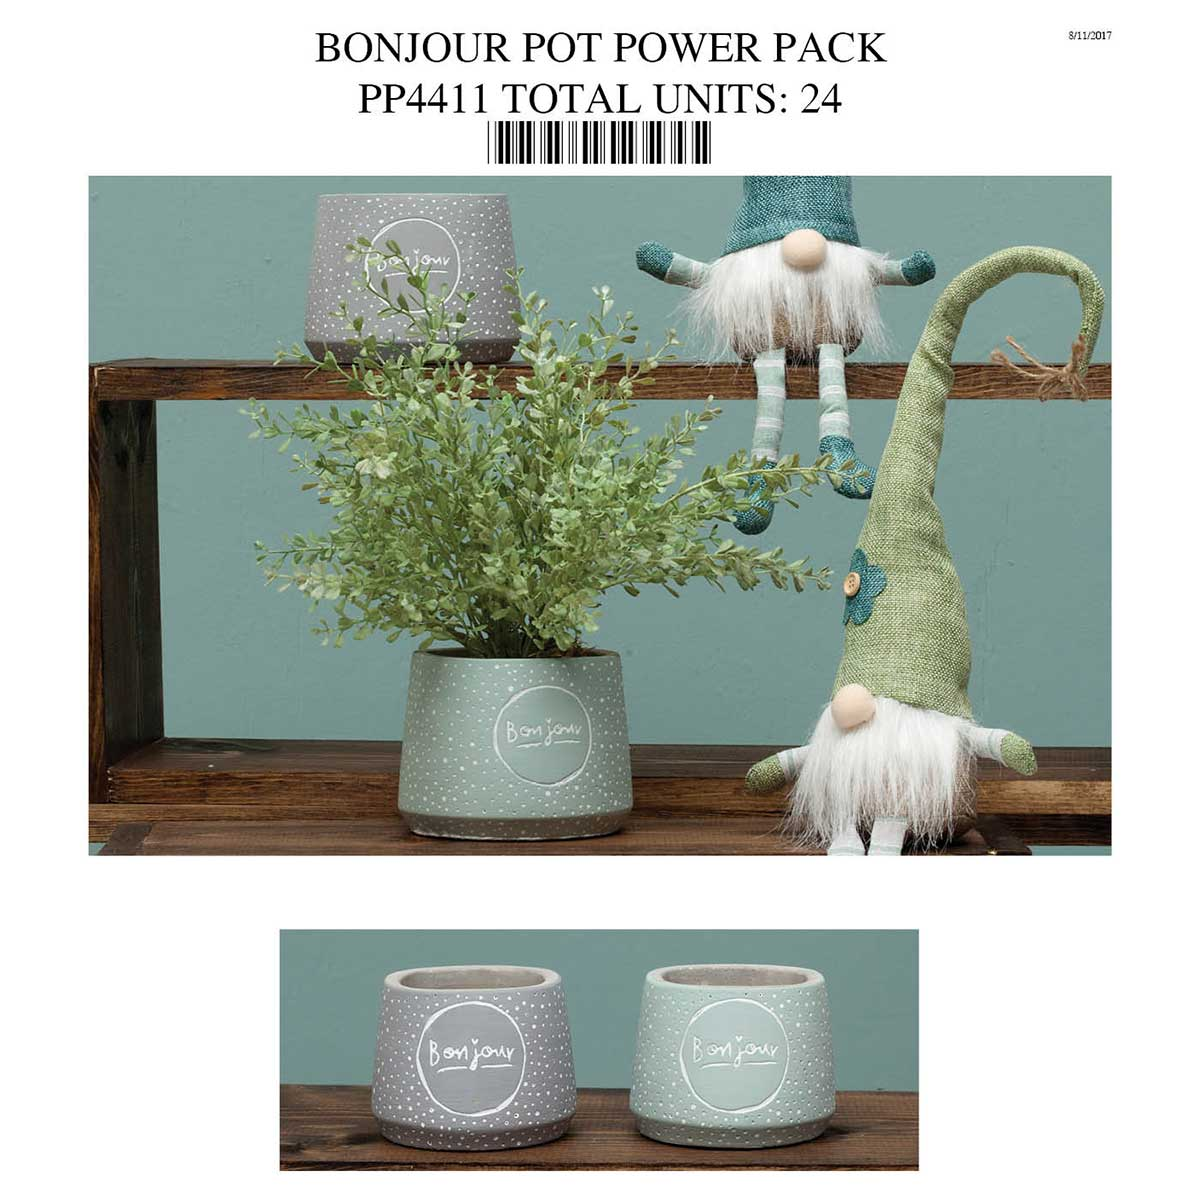 BONJOUR POT POWER PACK PP4411